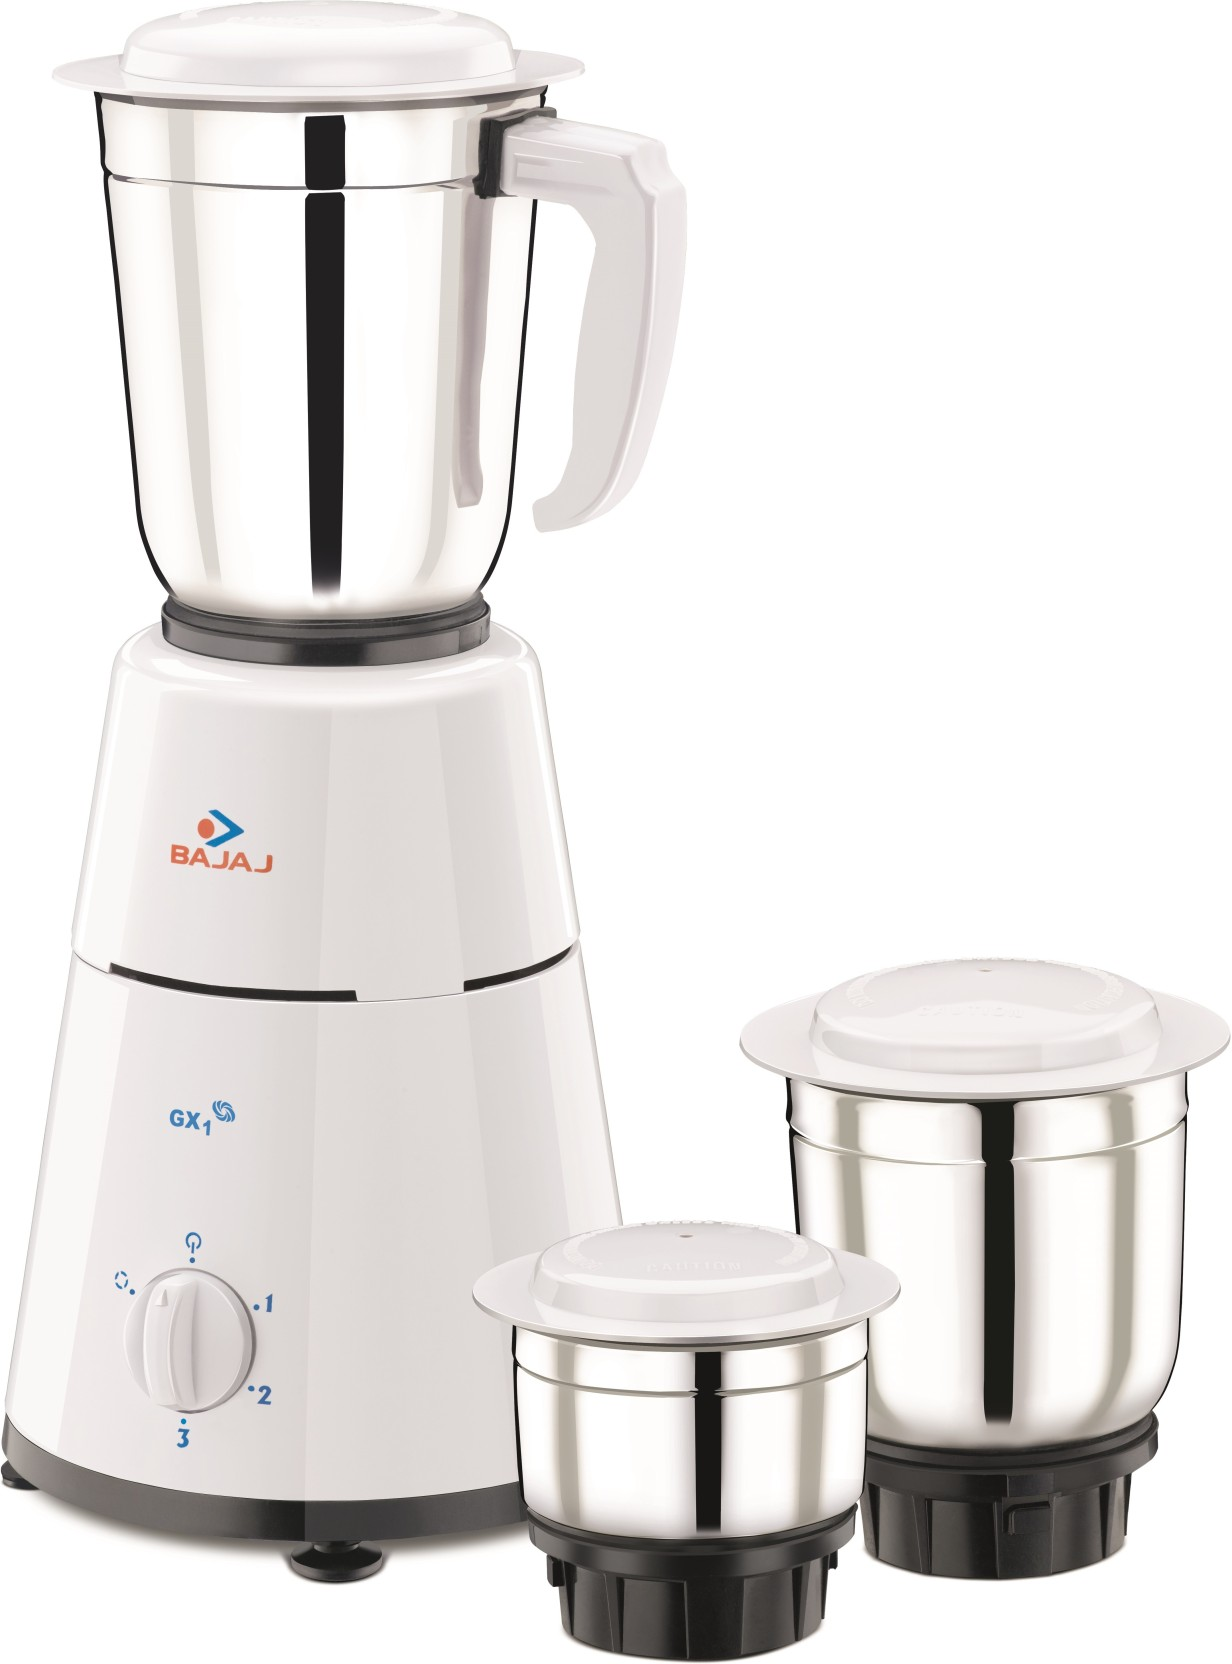 Bajaj GX1 500 W Mixer Grinder Price in India - Buy Bajaj GX1 500 W ...